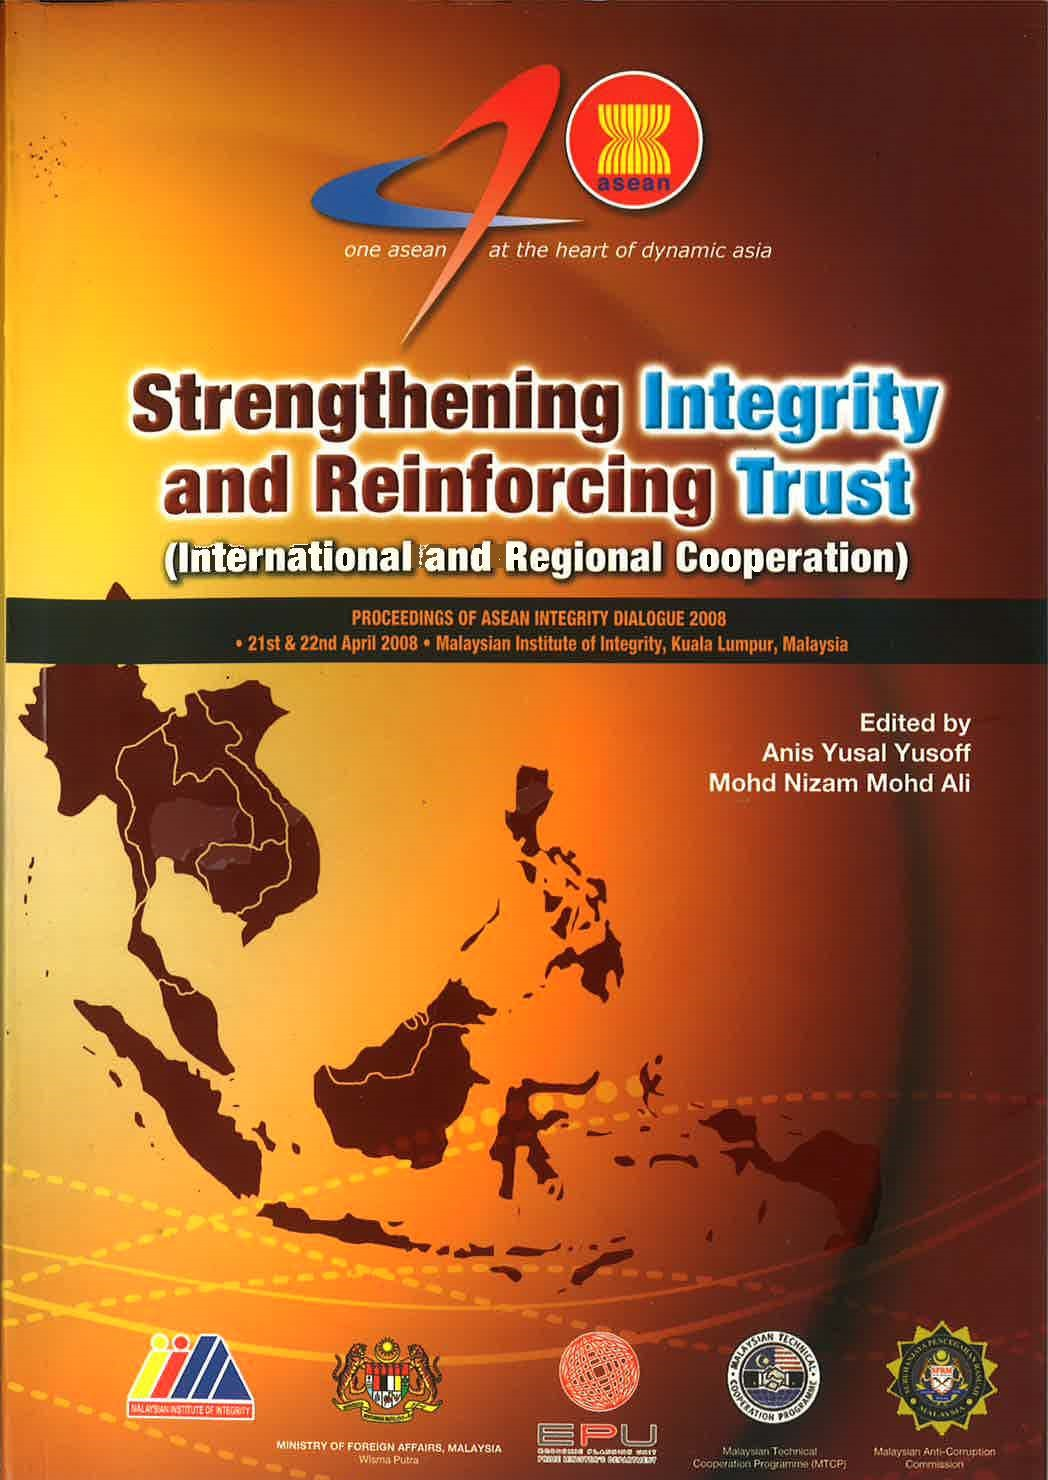 Strengthening Integrity and Reinforcing Trust (International and Regional Cooperation) Image